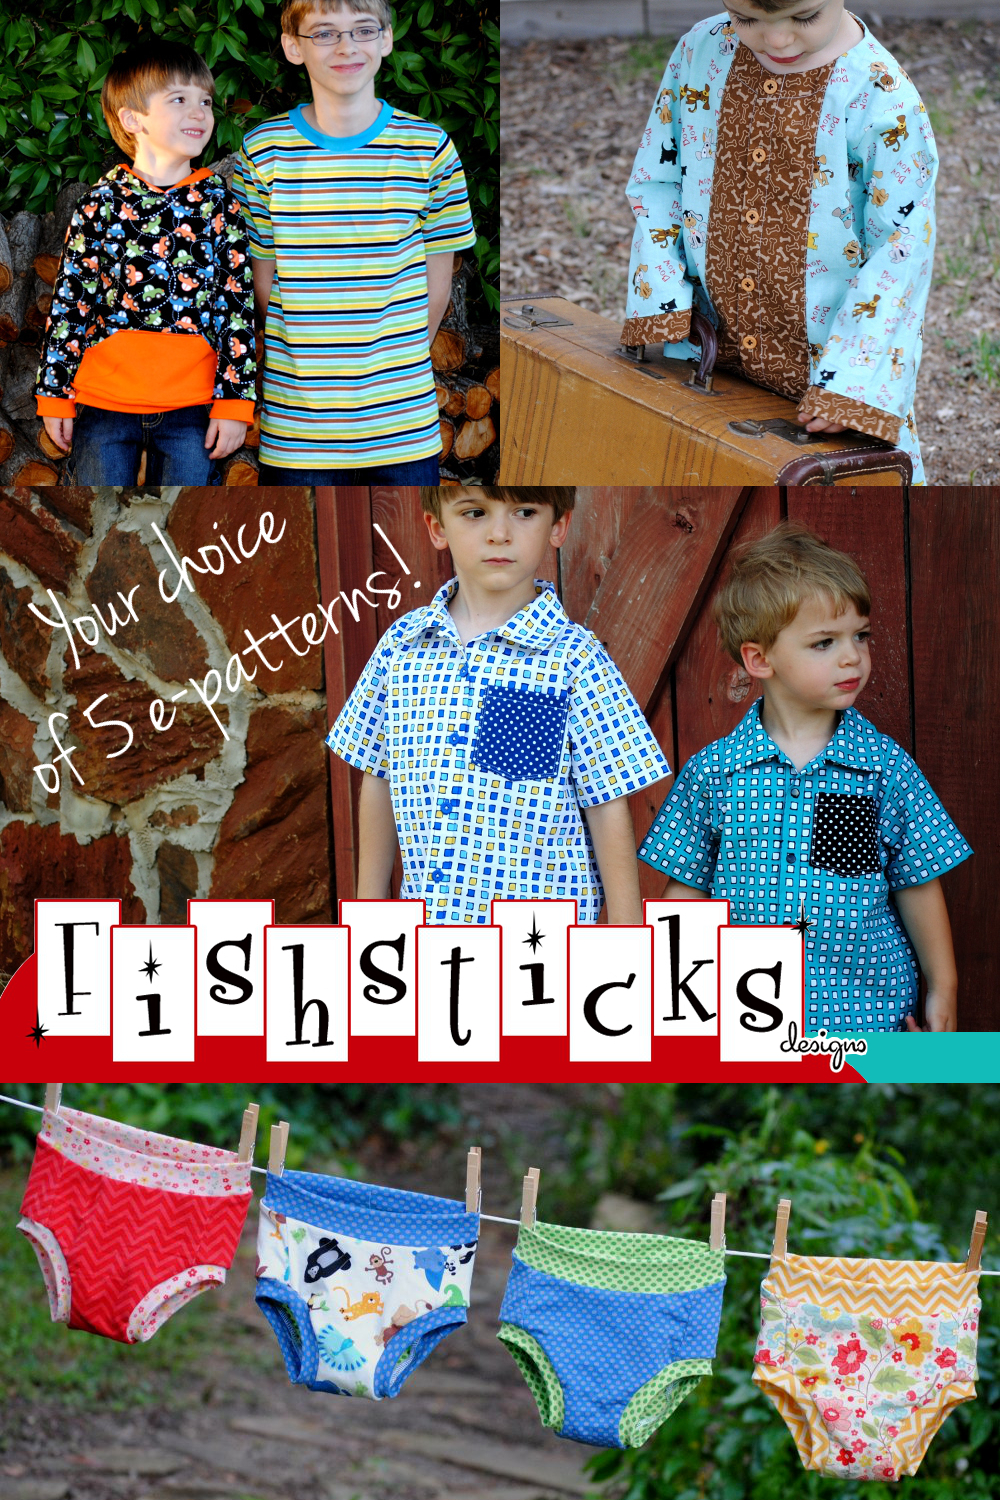 Fishsticks Designs